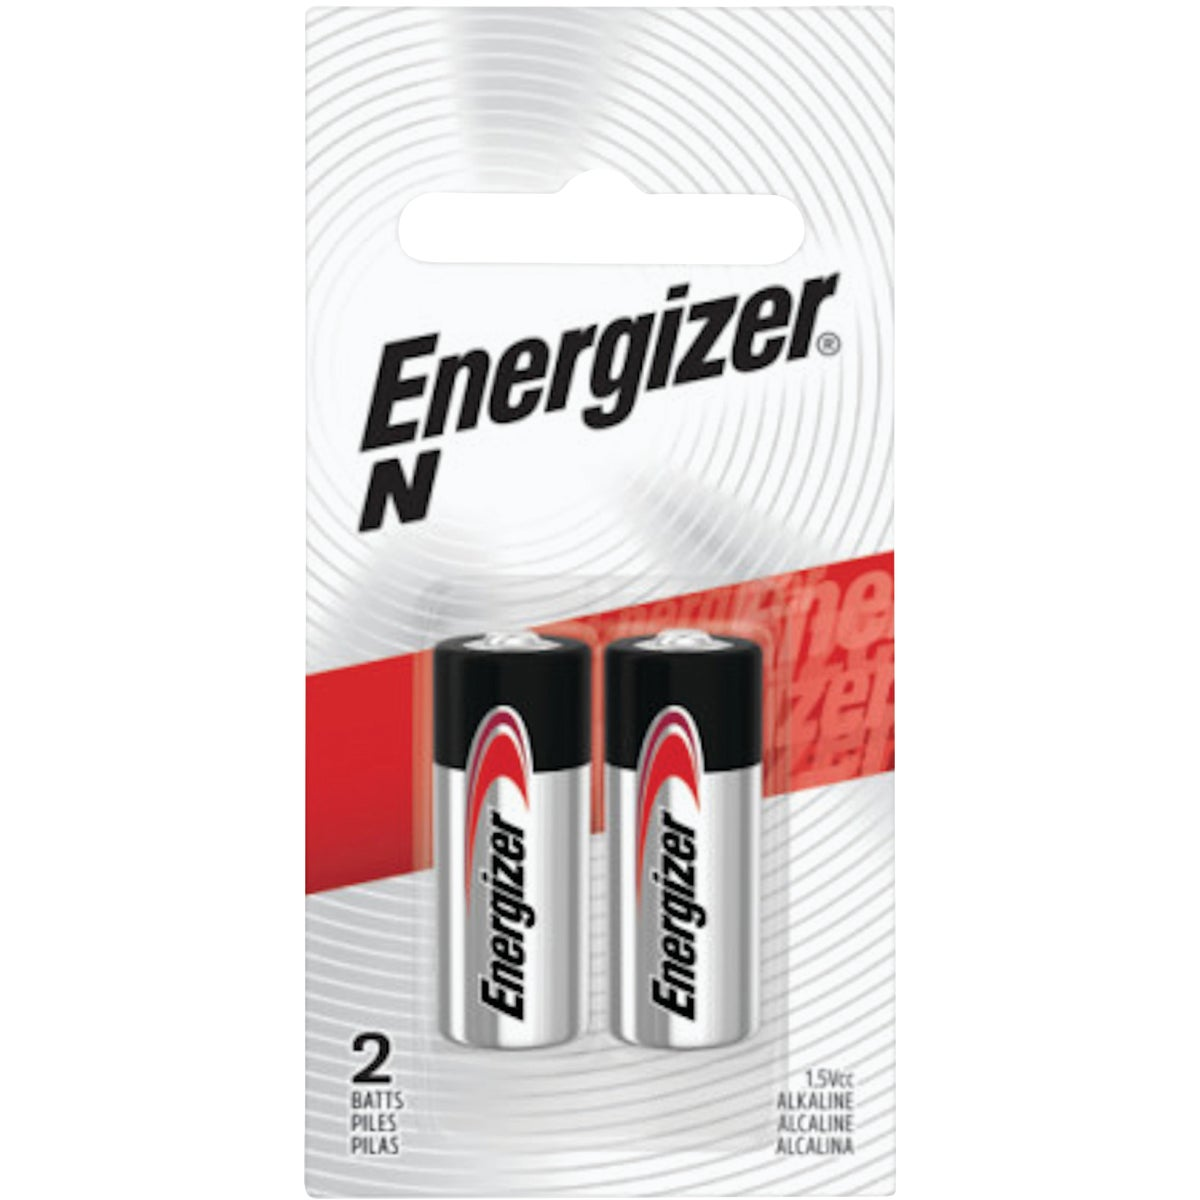 2CD 1.5V ALKALIN BATTERY - E90BP-2 by Energizer